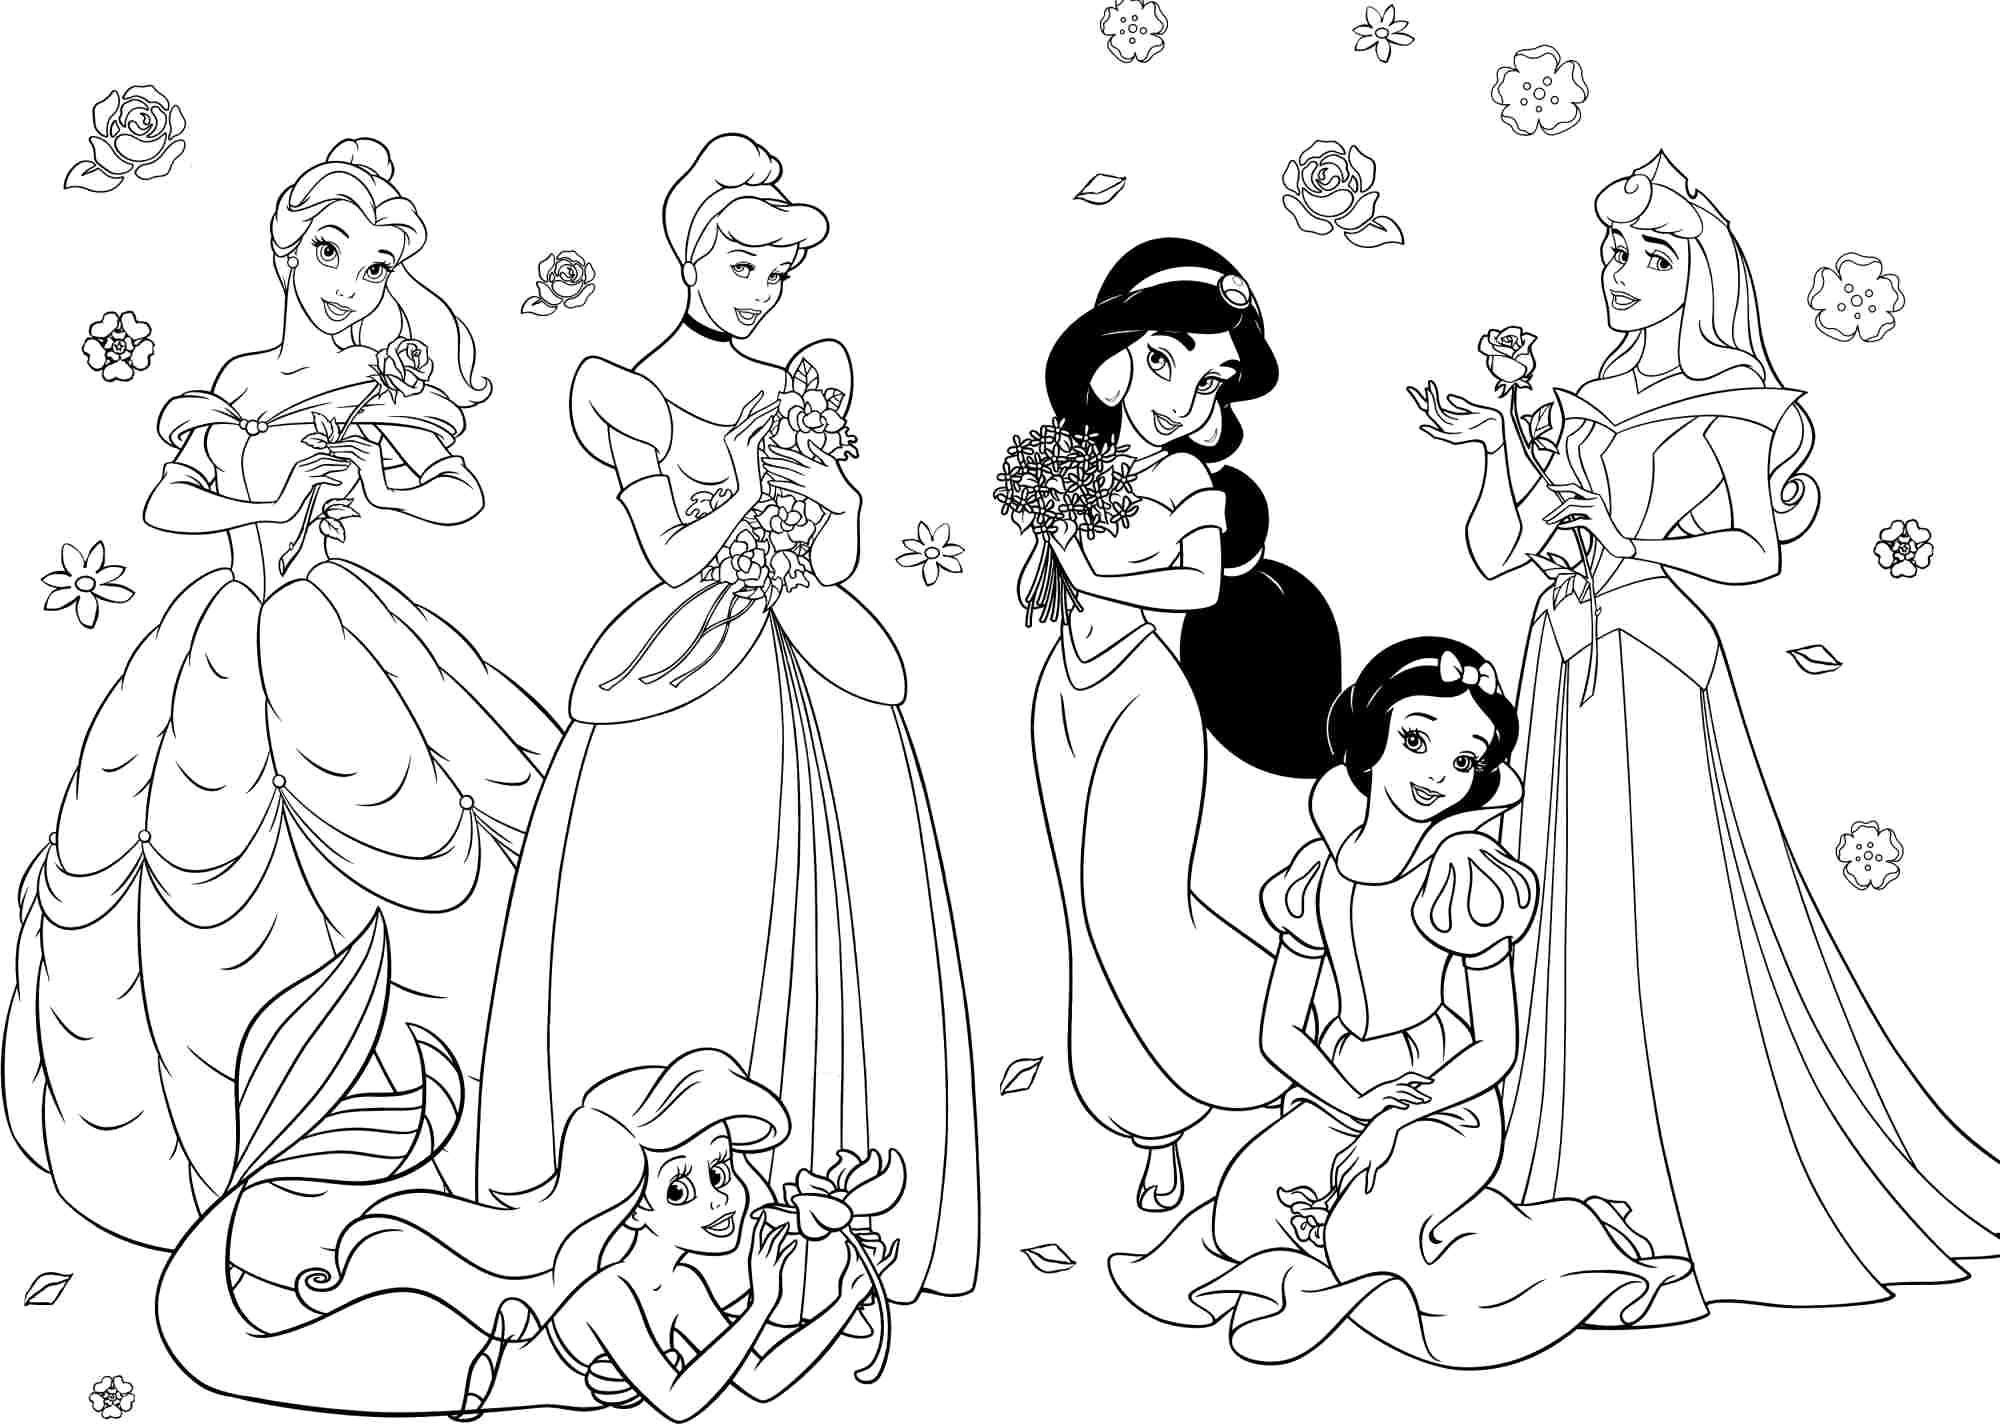 72 Disney Princess Coloring Book Pdf Download Free Images Buku Mewarnai Halaman Mewarnai Gambar